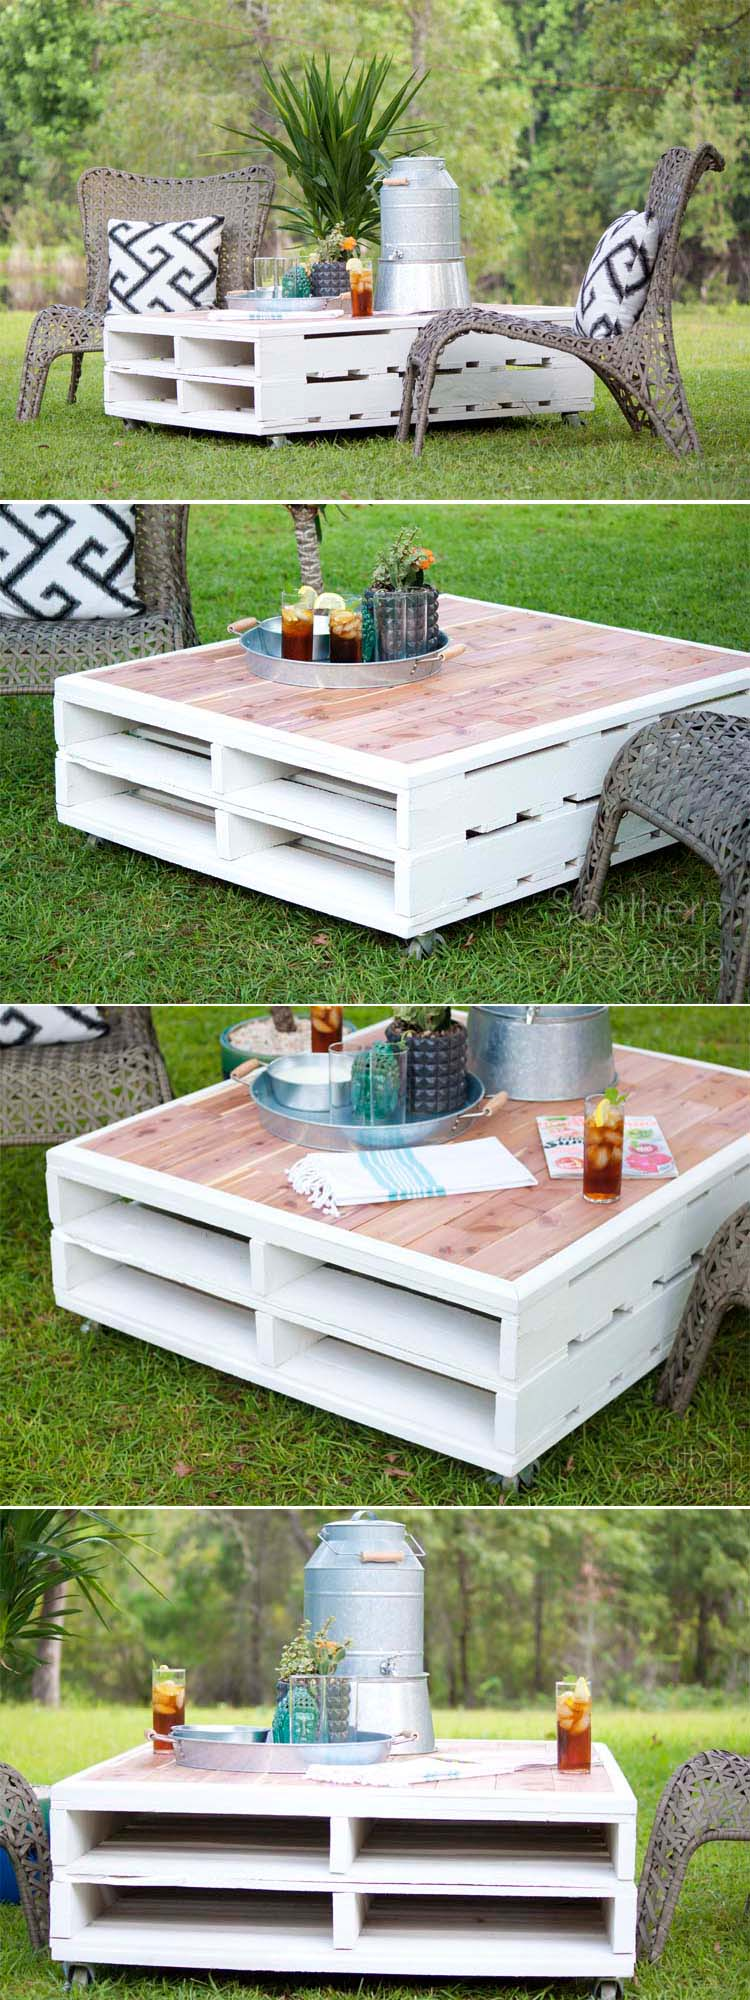 29 Best DIY Outdoor Furniture Projects (Ideas and Designs ... on Diy Garden Patio Ideas id=86394